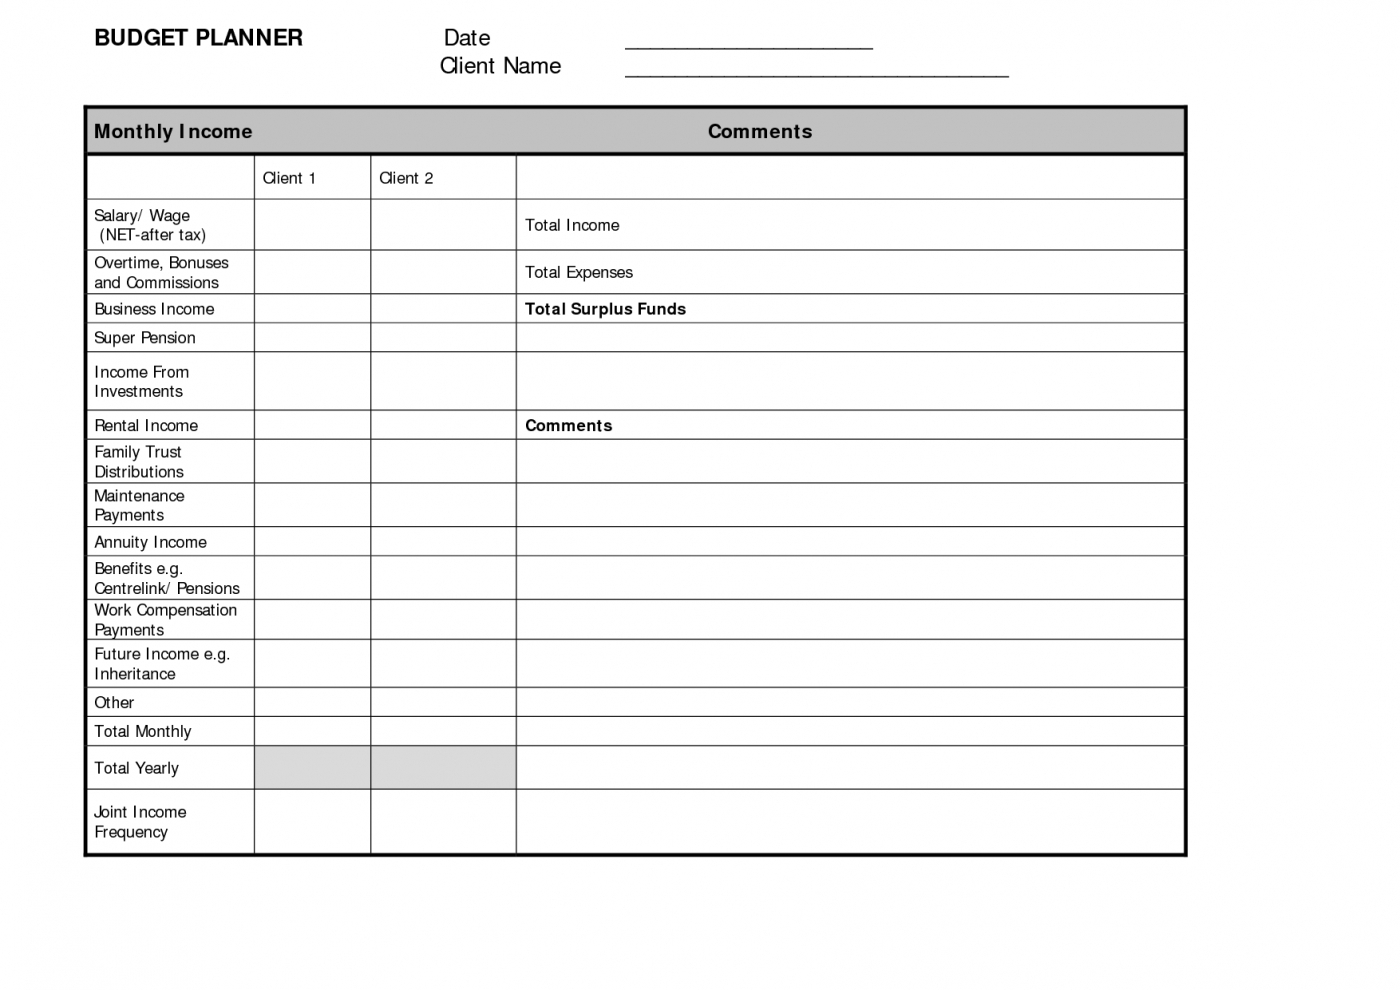 Monthly Budget Planner Template Free Download   Resourcesaver And Monthly Budget Planner Template Free Download